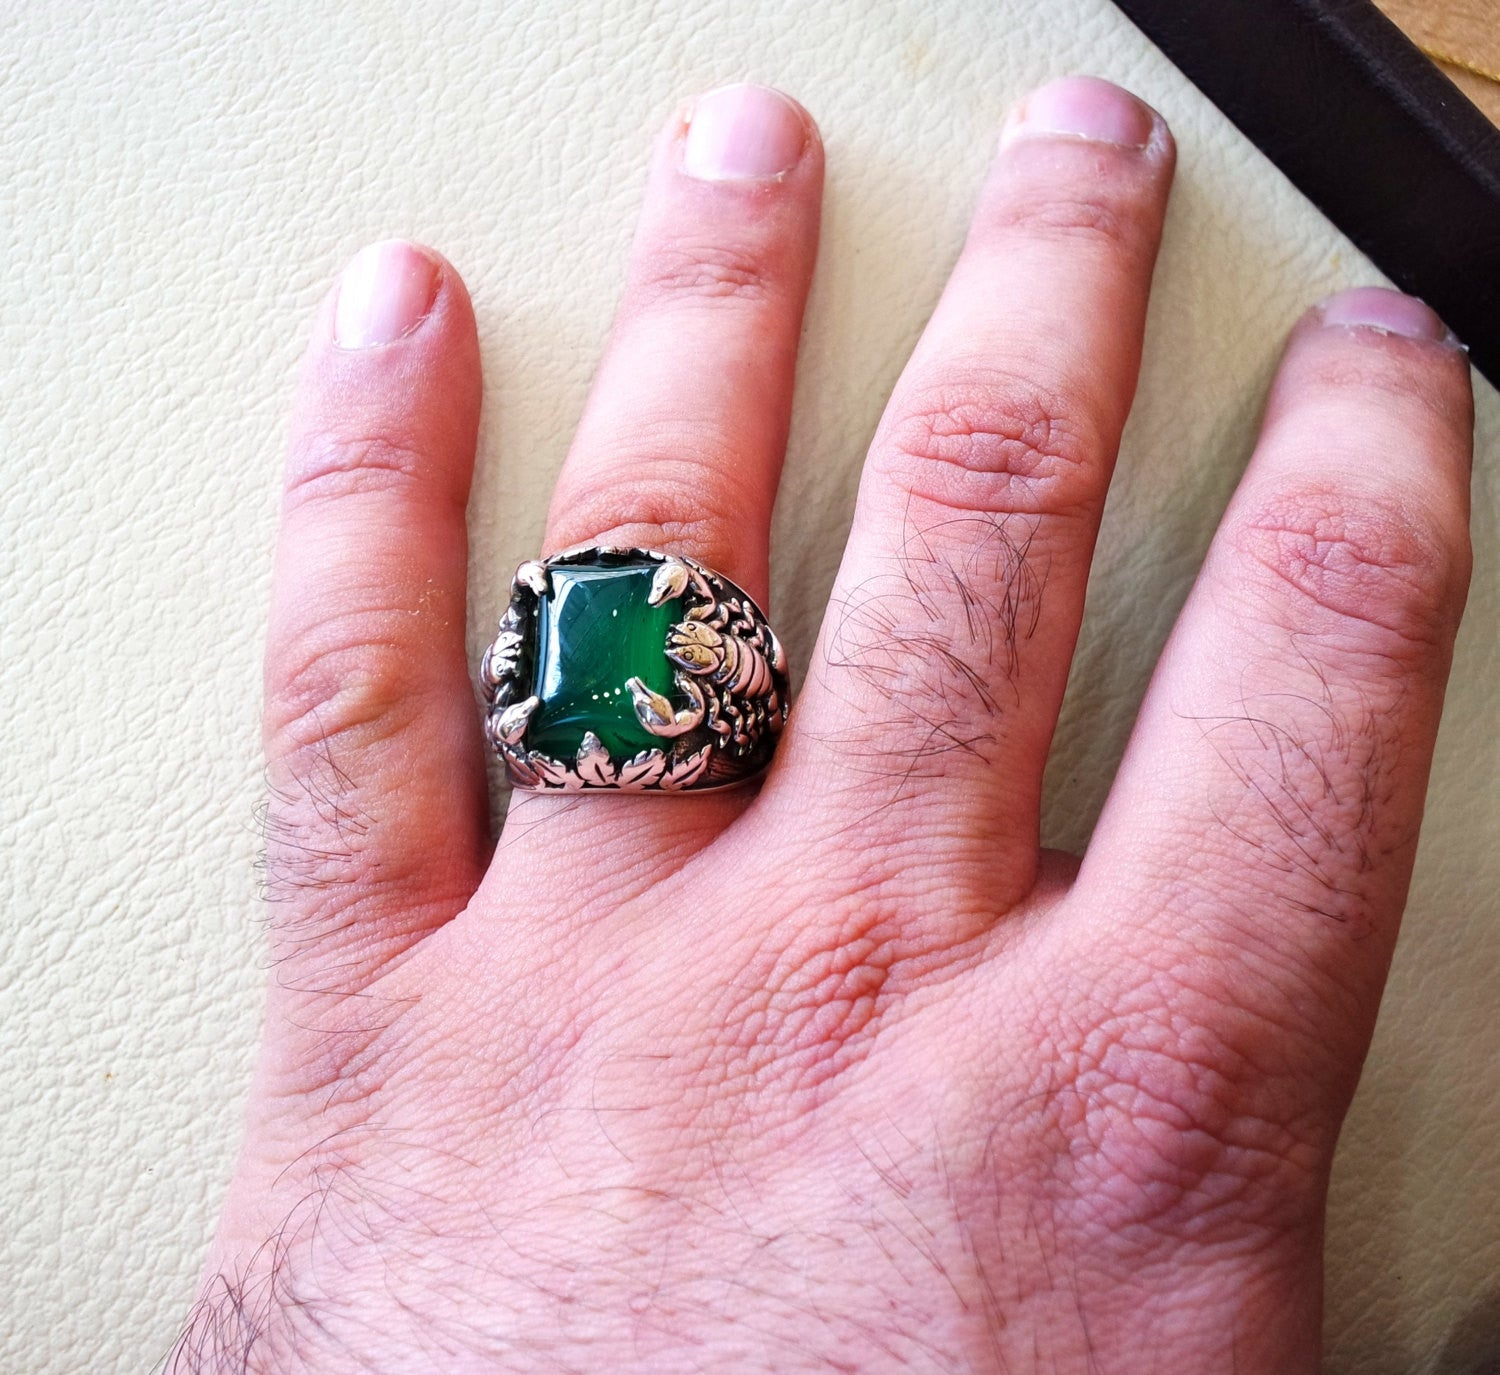 huge scorpion sterling silver 925 huge ring any size rectangular green aqeeq agate middle eastern vintage handmade jewelry fast shipping